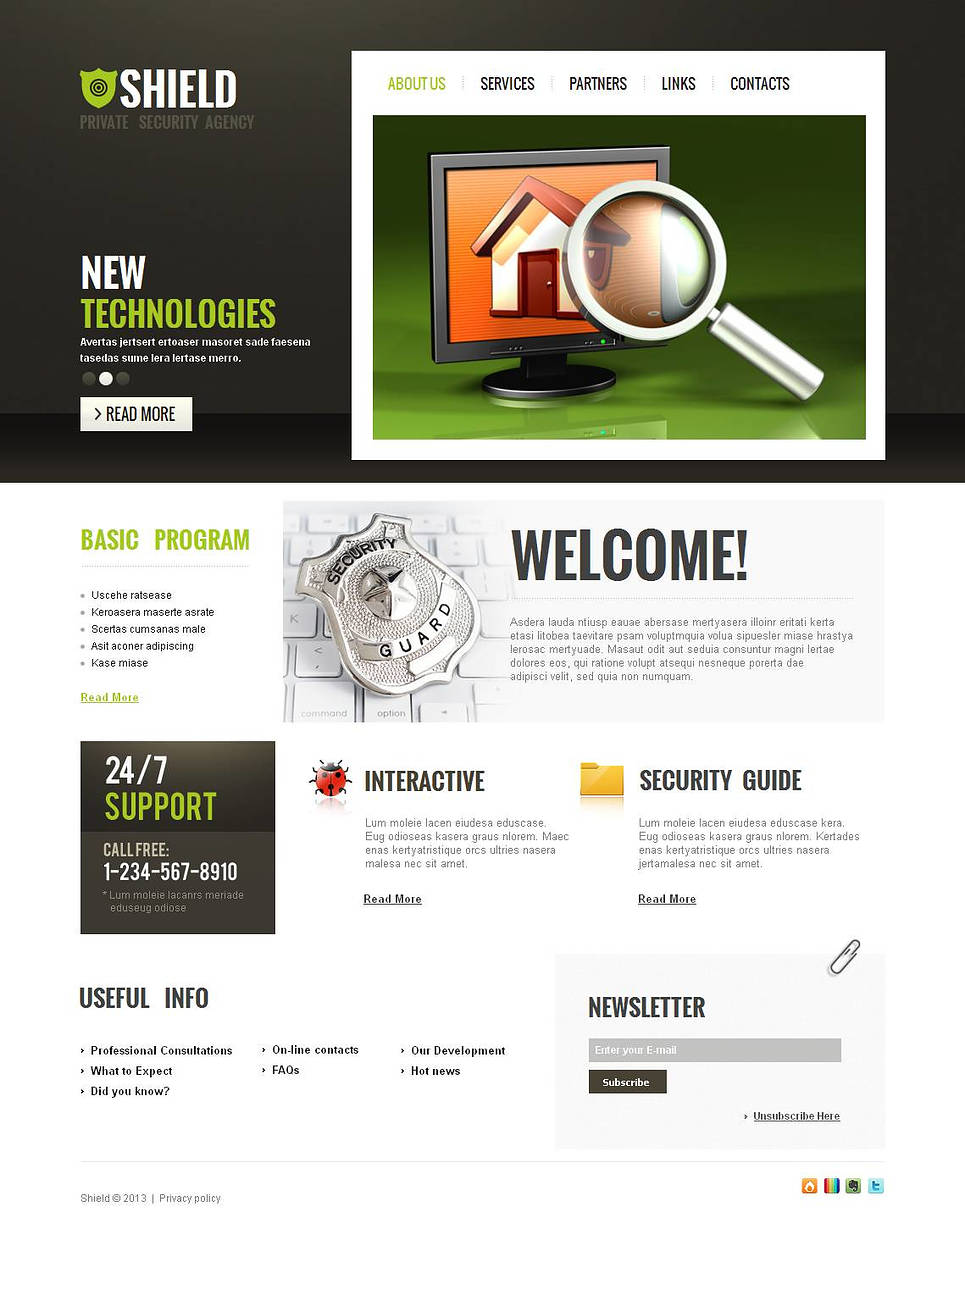 Private Security Agency Template with Creative Menu Design - image